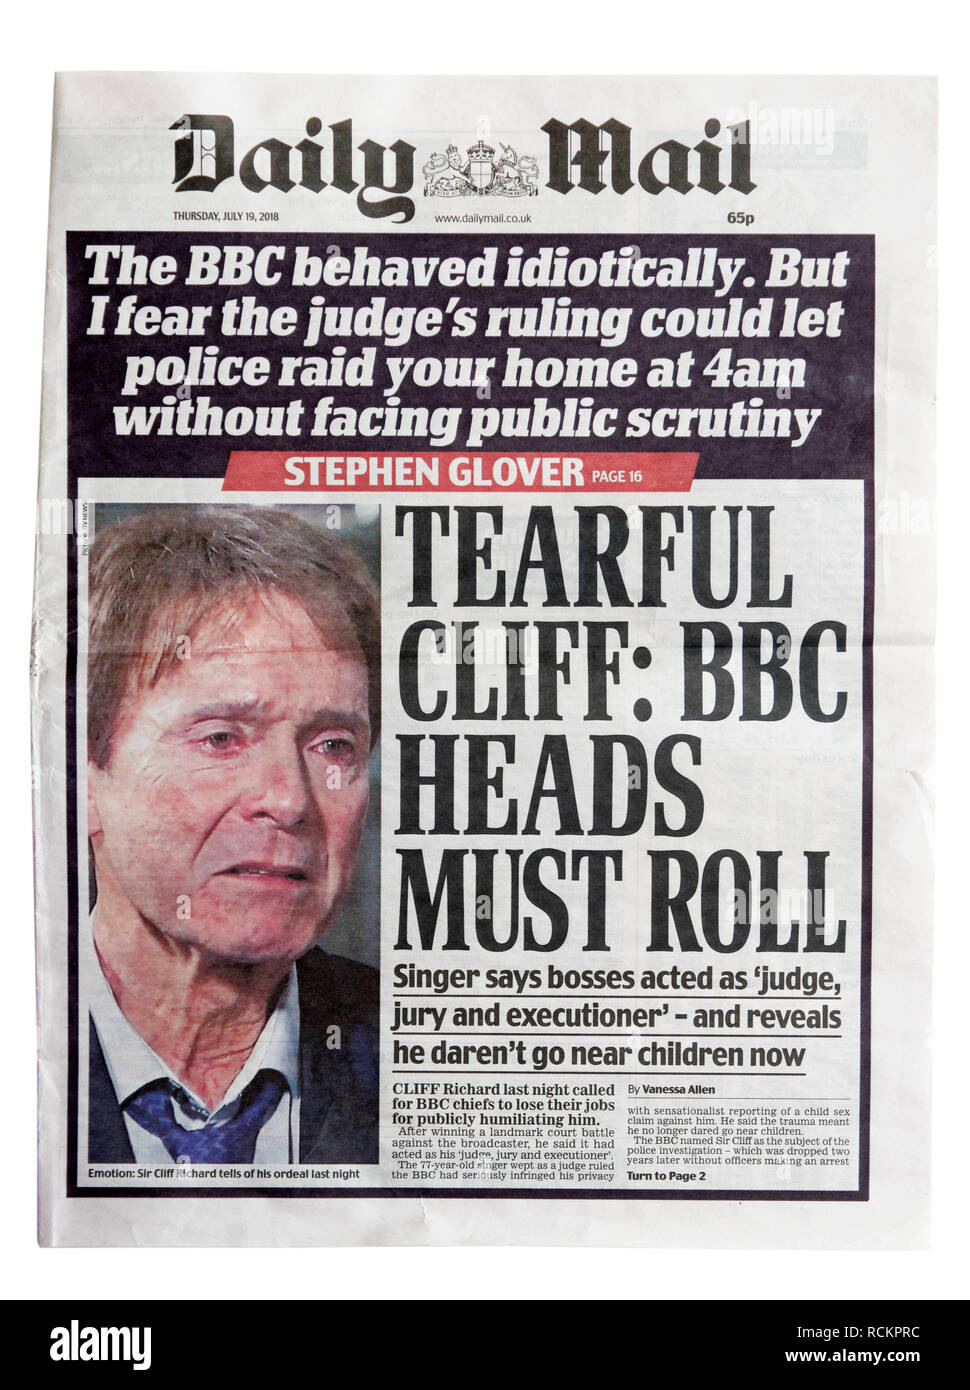 The front page of the Daily Mail with the headline Tearful Cliff: Heads Must Roll, discussing the search of his house and child abuse claims. - Stock Image